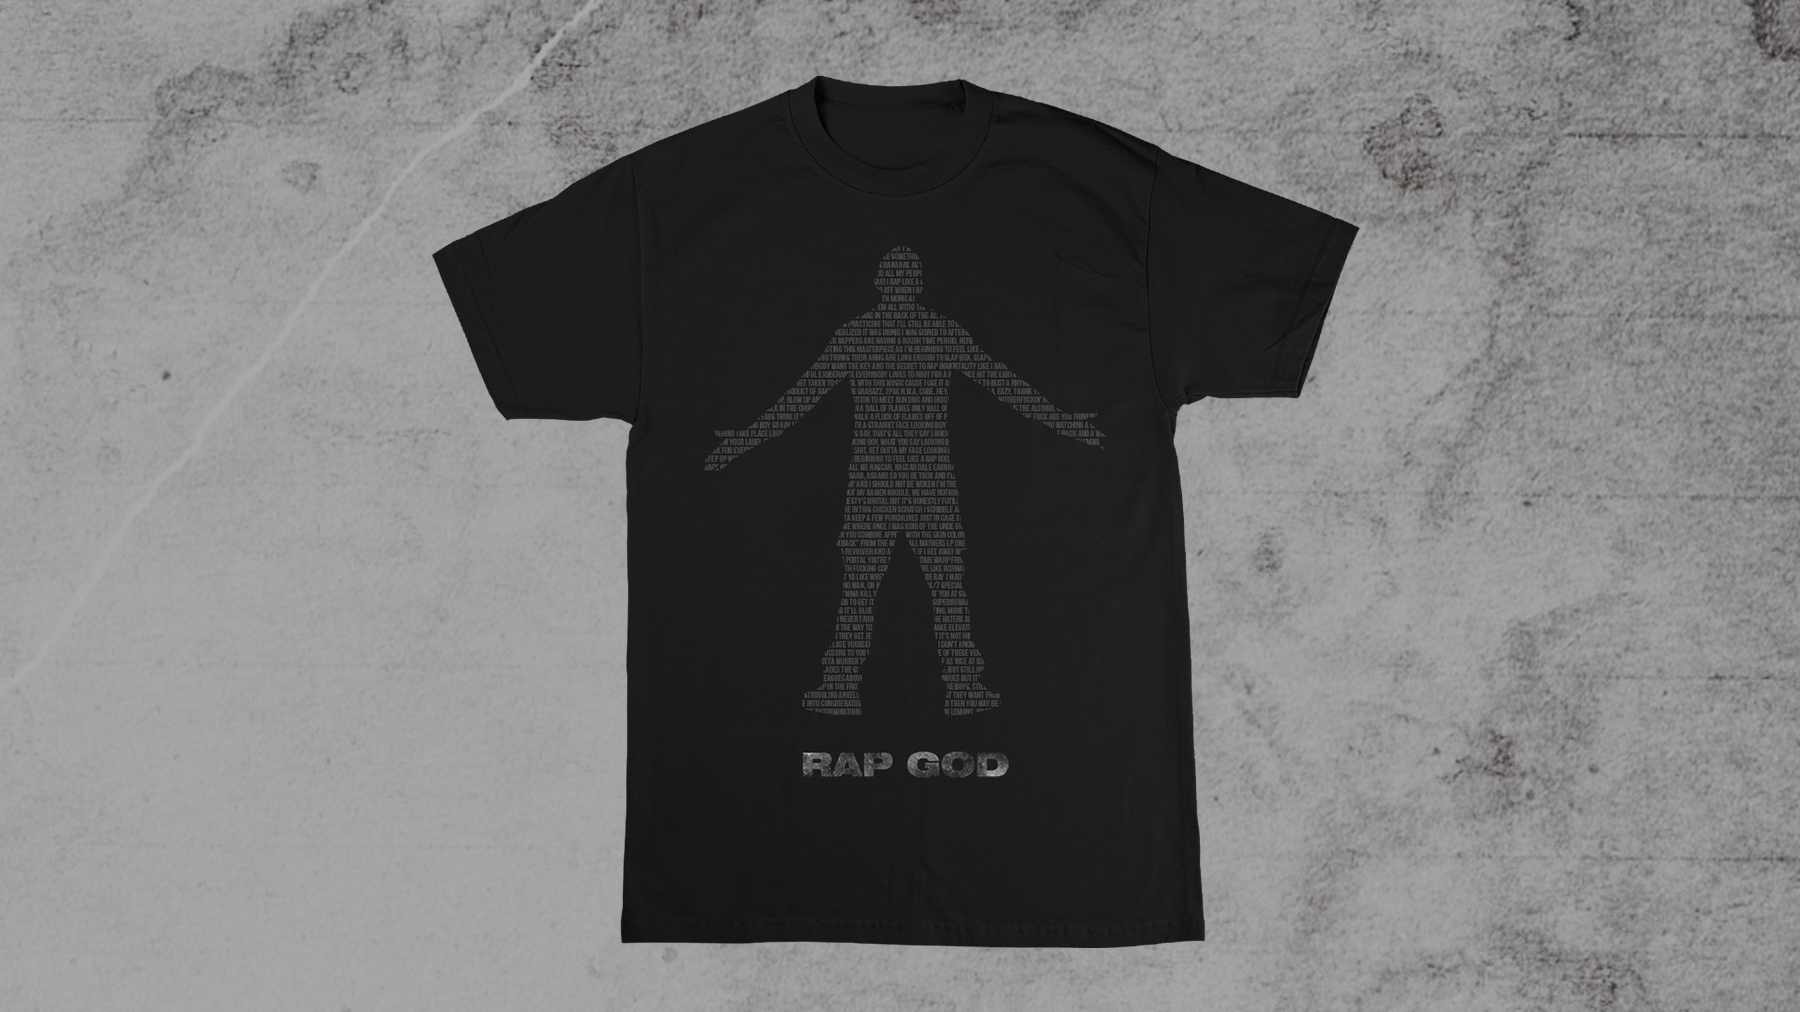 Eminem Rap God 2.0 T-Shirt Black on Black